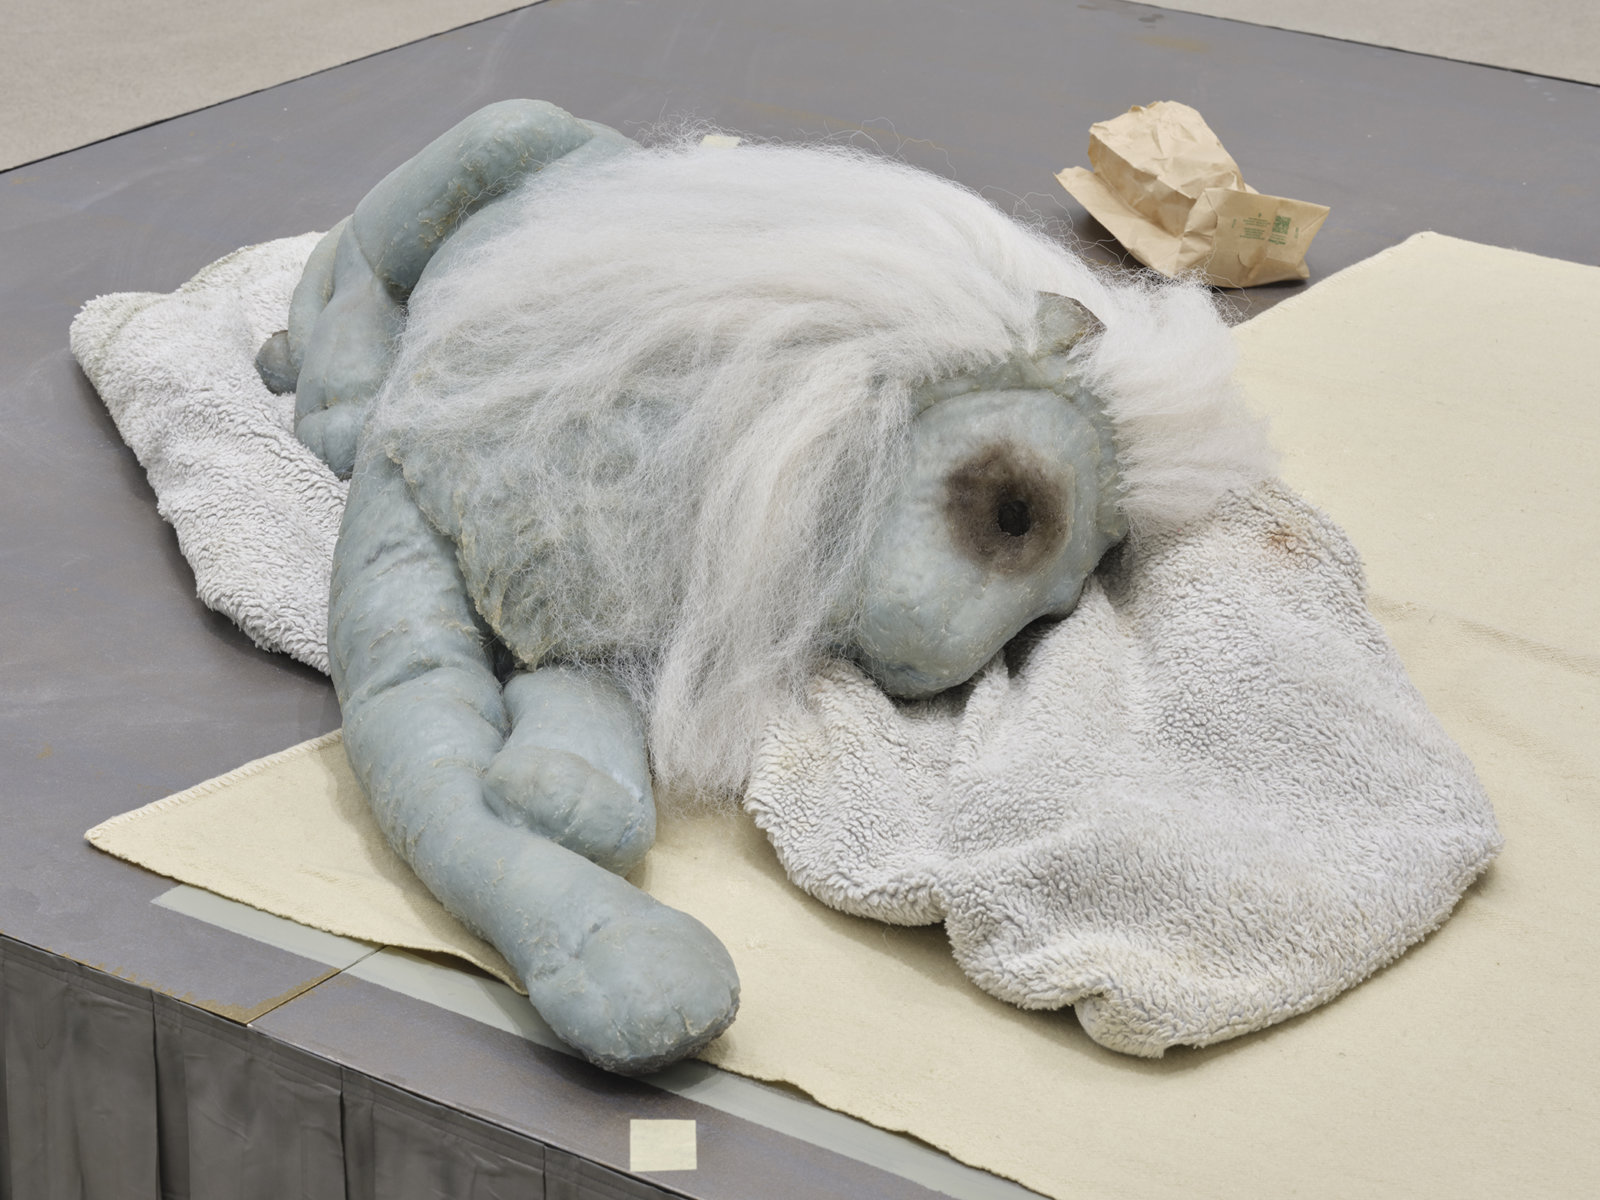 Liz Magor, Coiffed (detail), 2020, painted plywood, fabric skirting, silicone rubber, artificial hair, acrylic throw, woollen blankets, silver fabric, linen, jewellery boxes, costume jewellery, packaging materials, 27 x 132 x 96 in. (69 x 335 x 244 cm) by Liz Magor